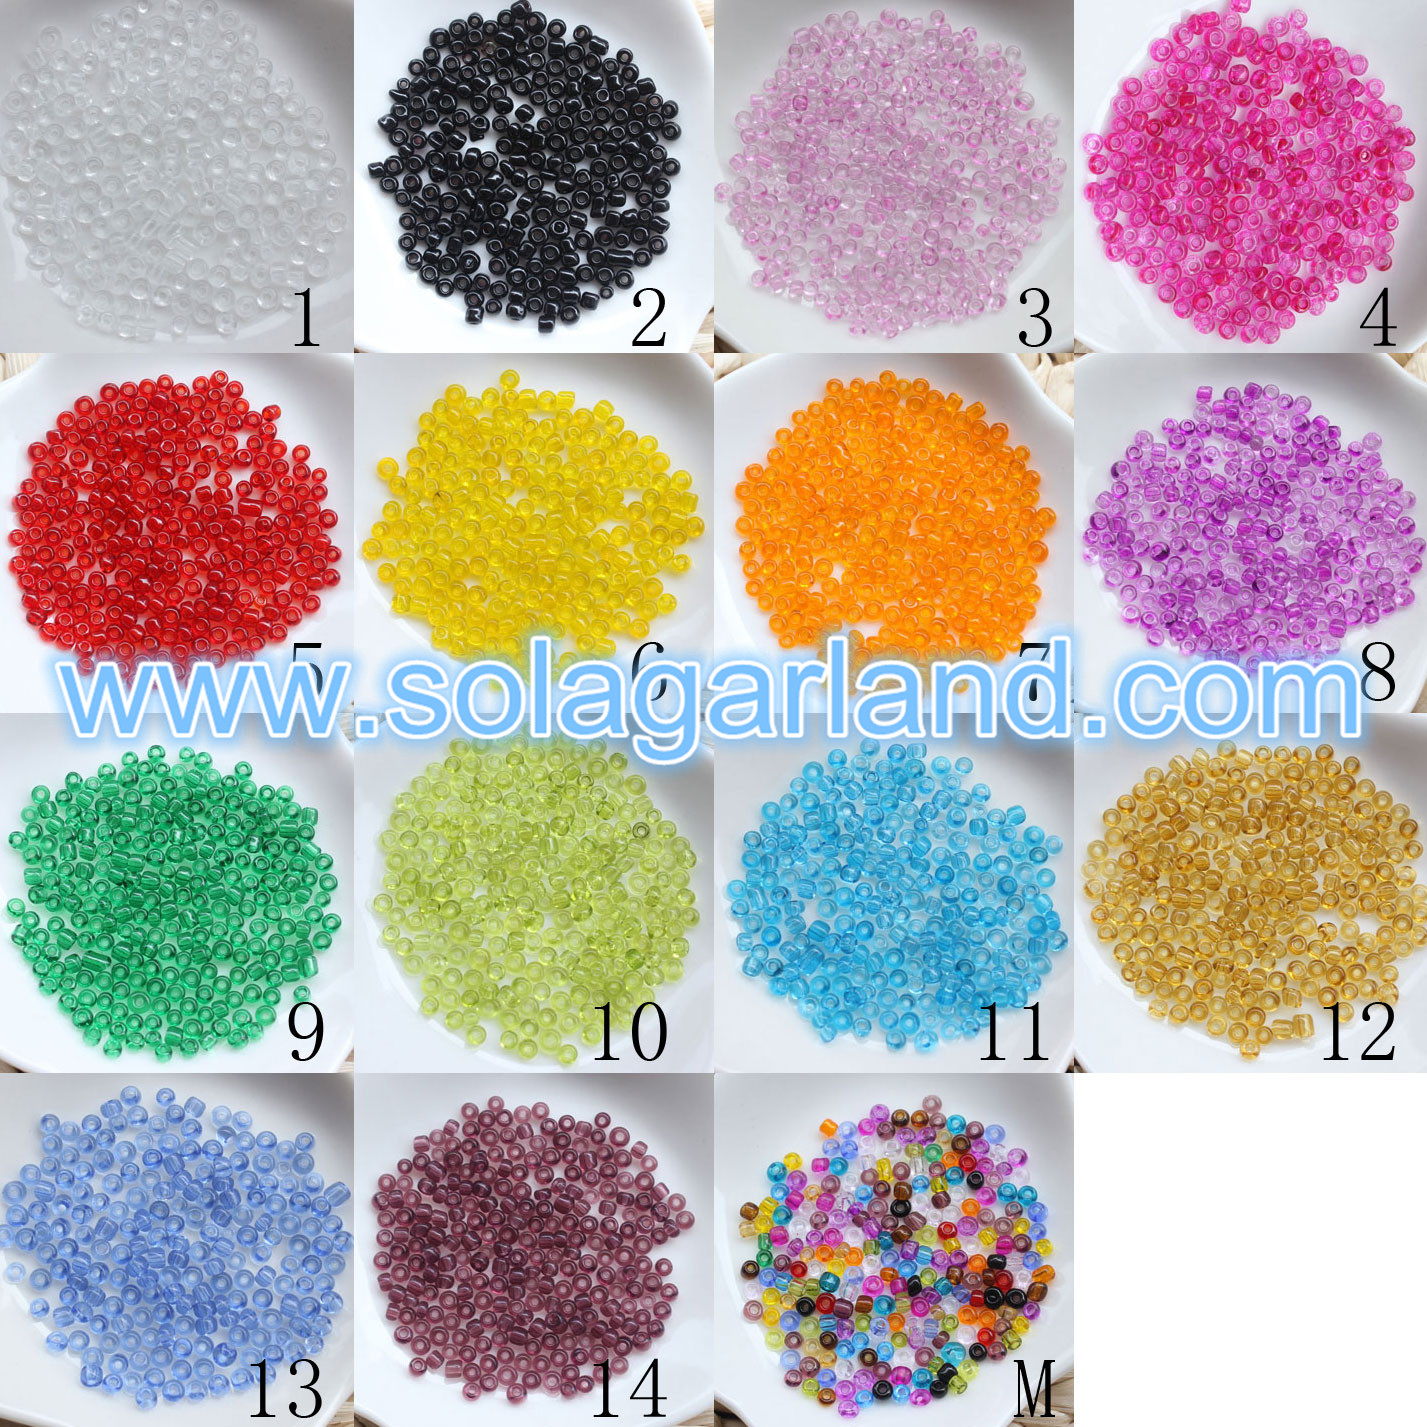 3MM Czech Glass Seed Beads